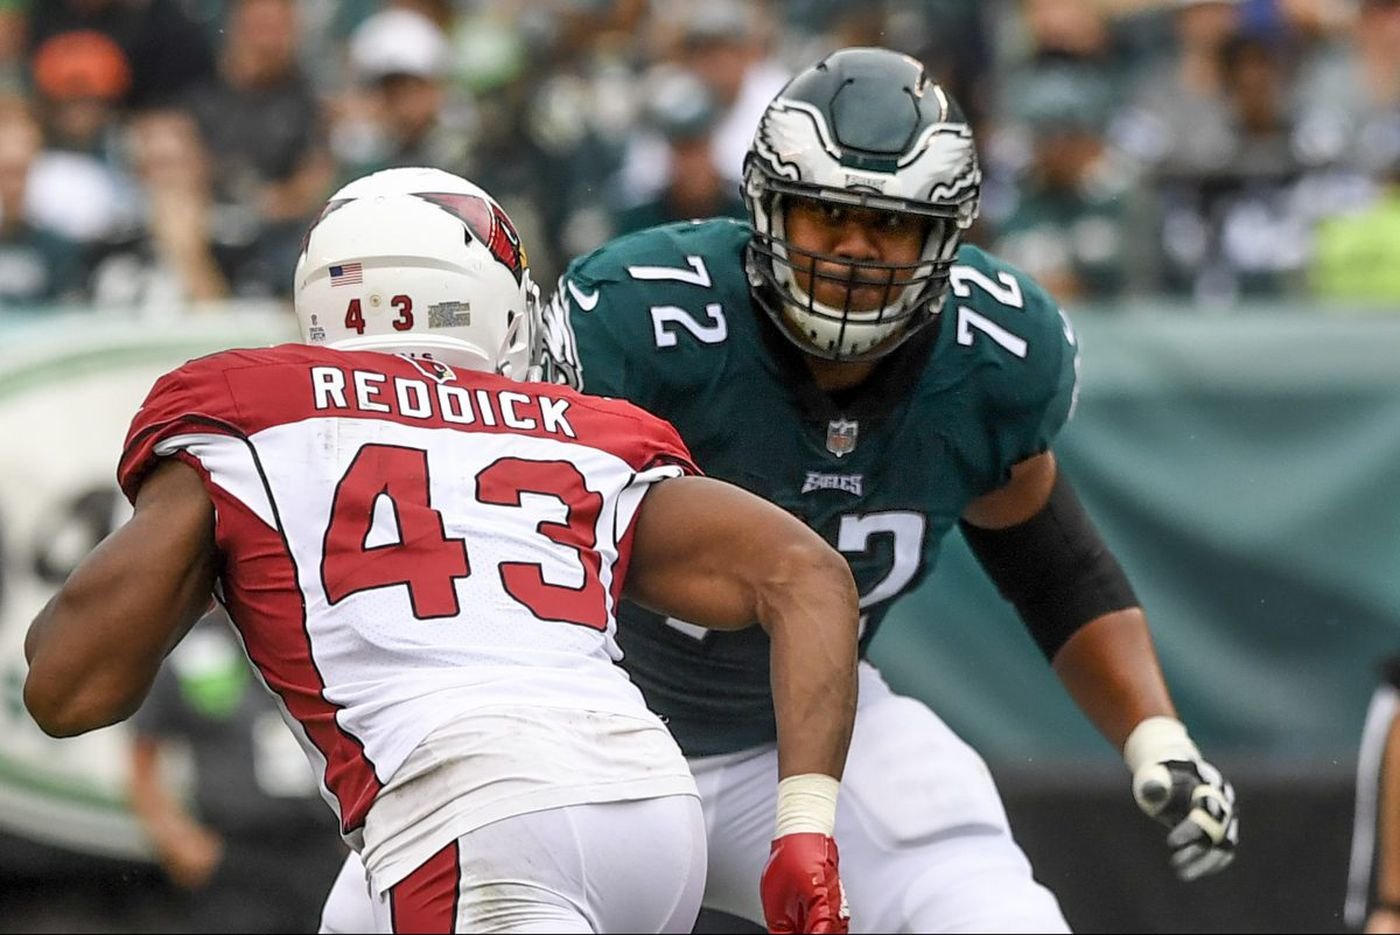 Eagles' subs likely to be tested again Thursday